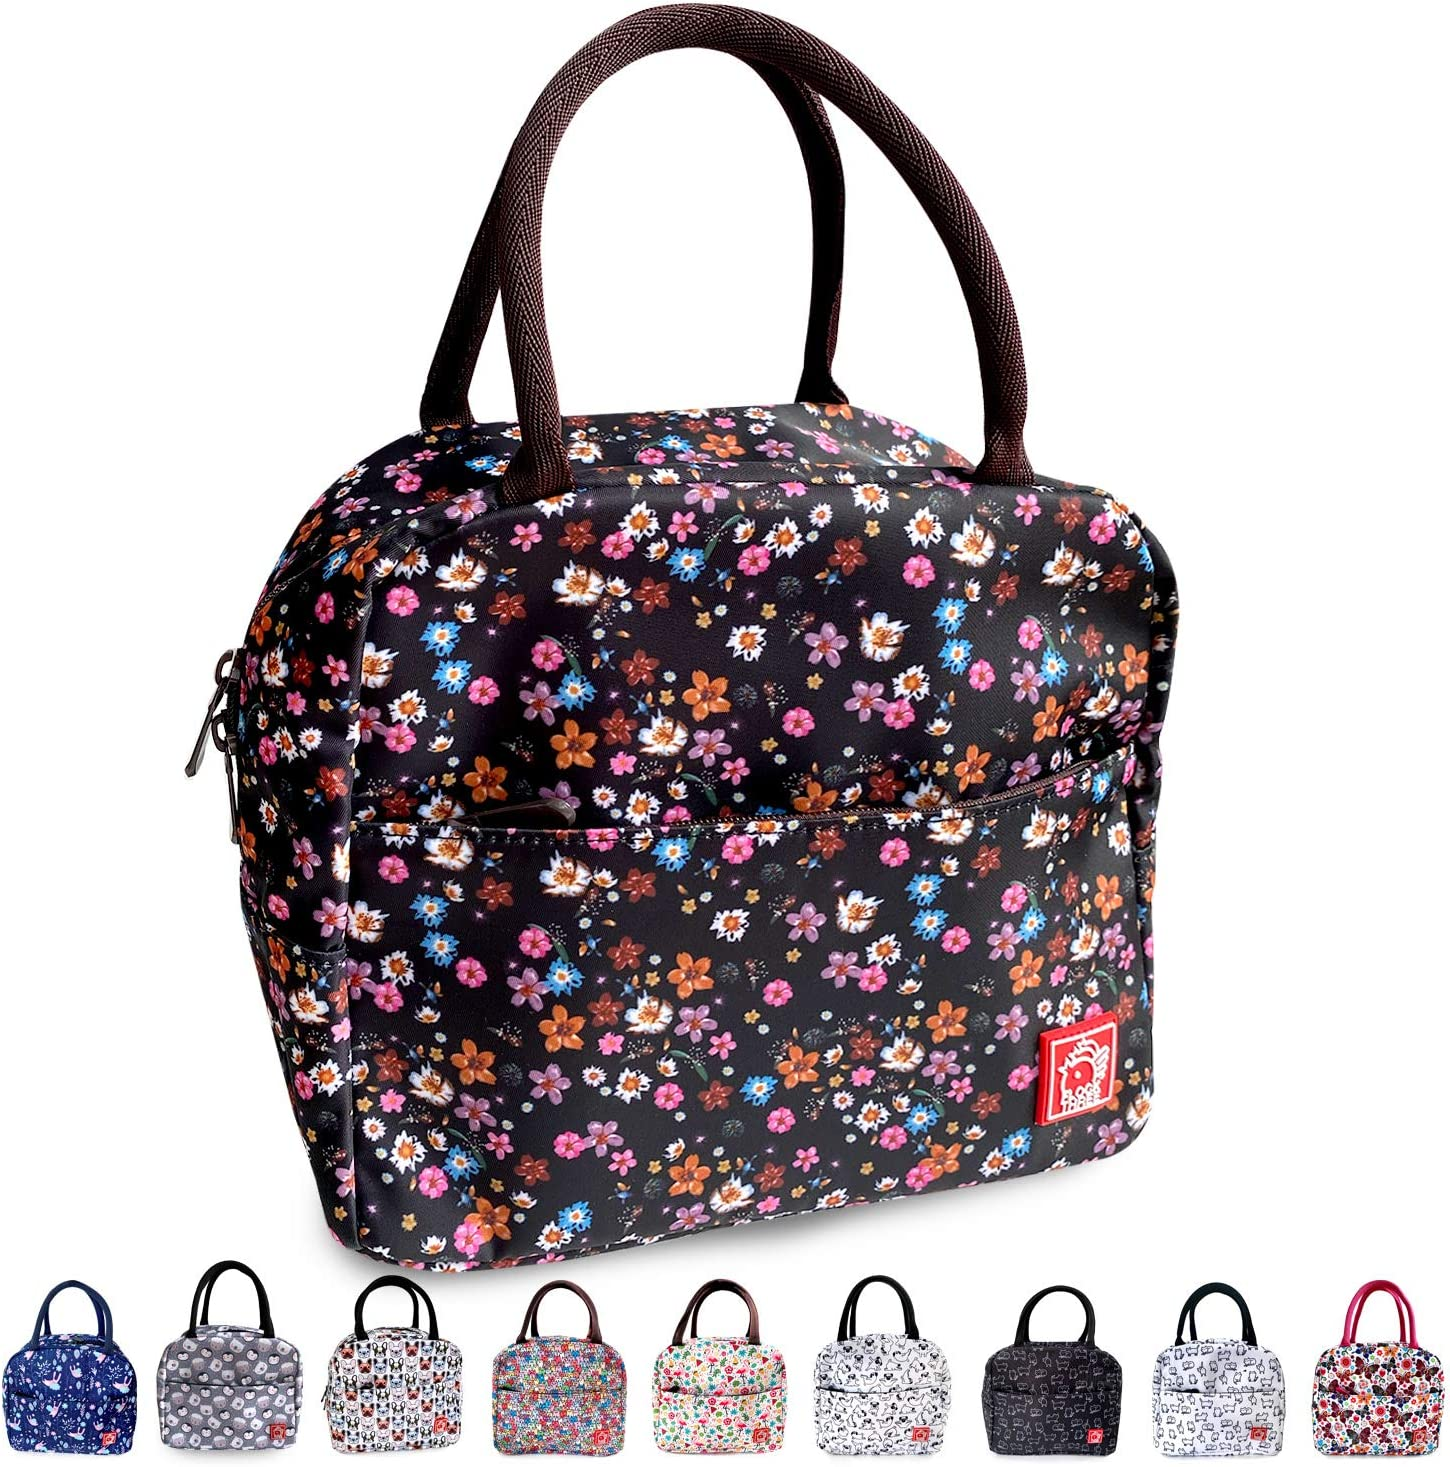 FLOCK THREE Waterproof Insulated Reusable Lunch Bag Food Drinks Container with Front Padded Pocket Double Zippers For Kids Women Work School Picnic Floral Design